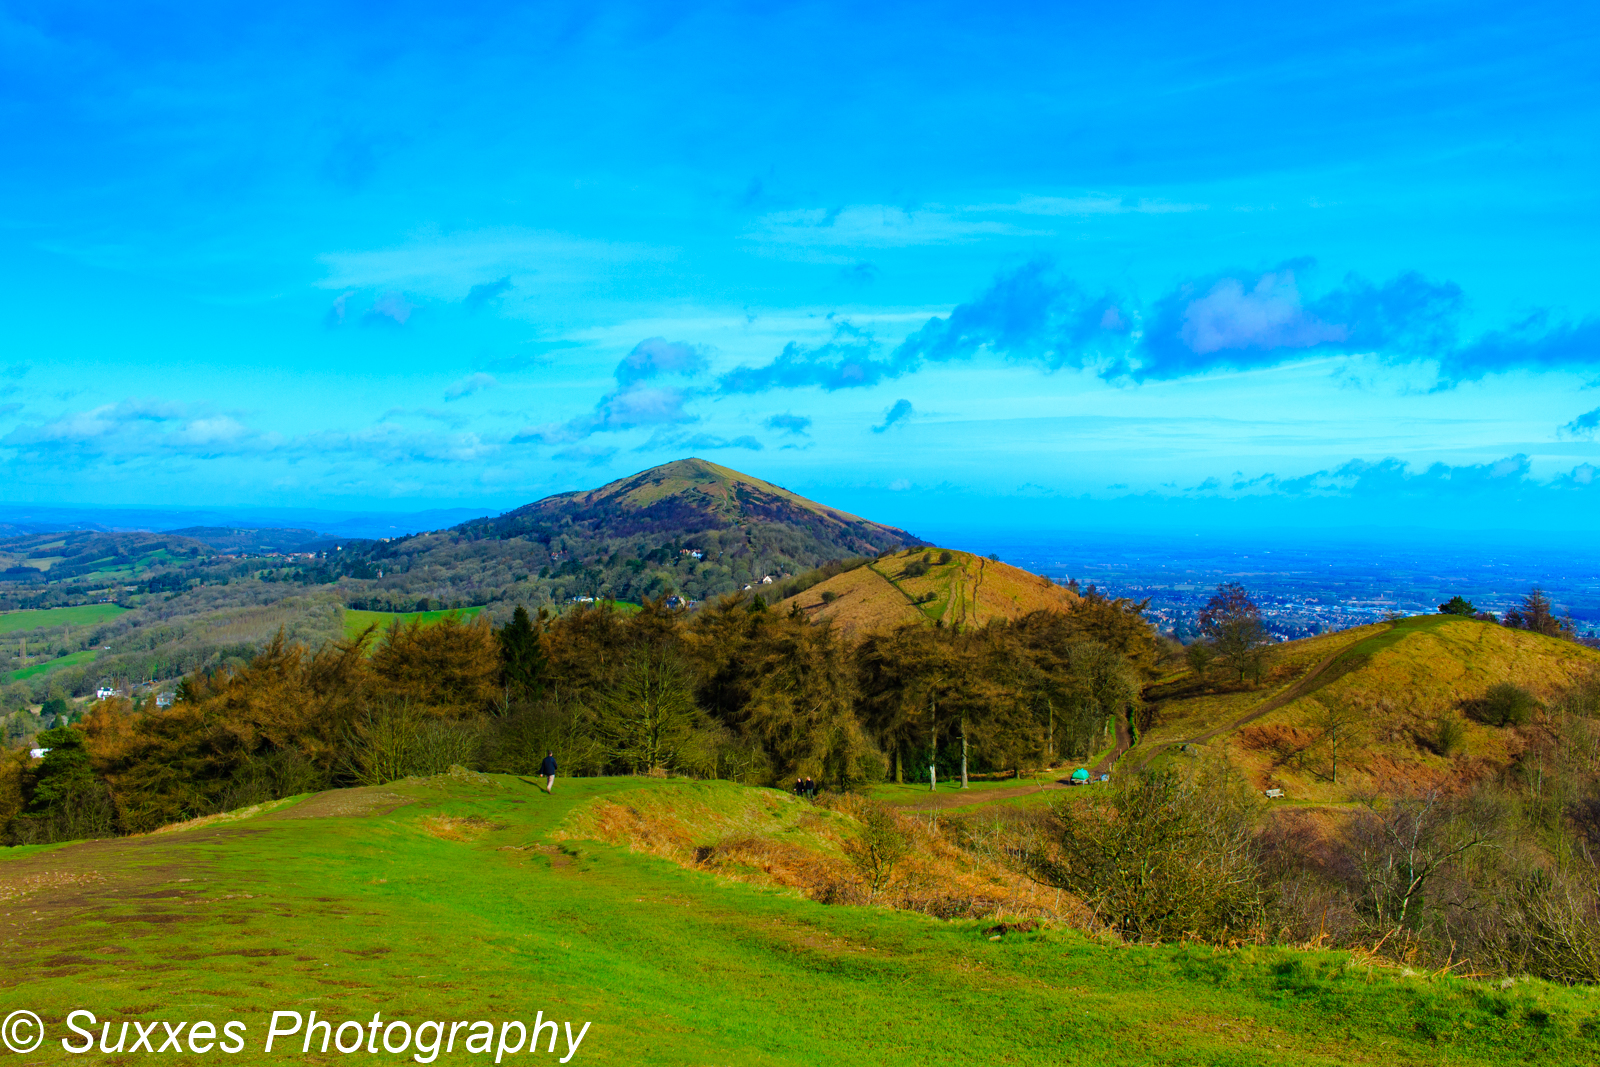 Worcestershire Peak